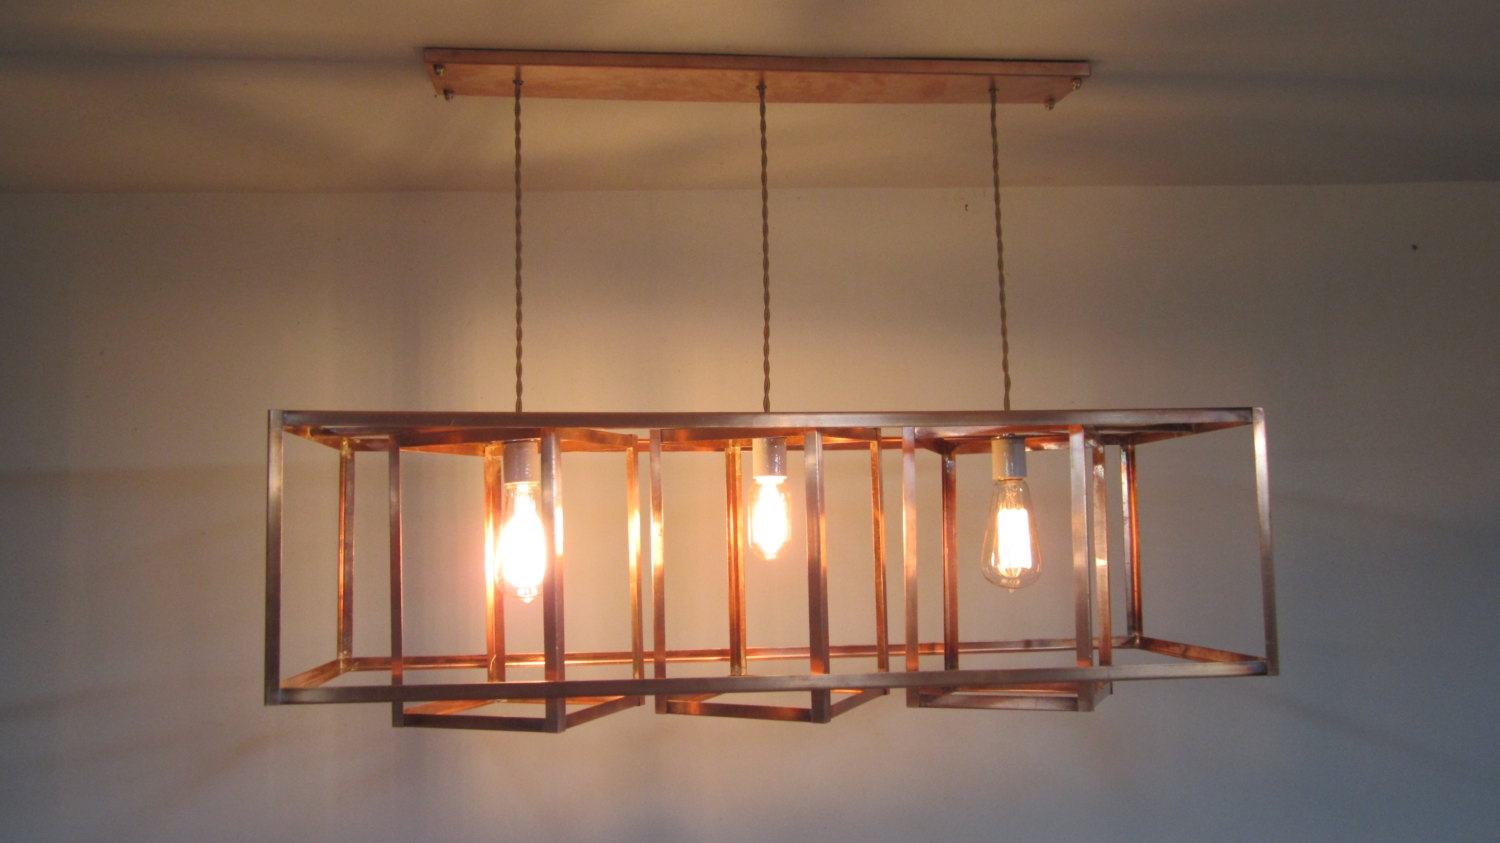 Reserved Custom Geometric Chandelier With Copper Socket Throughout Copper Chandeliers (#12 of 12)